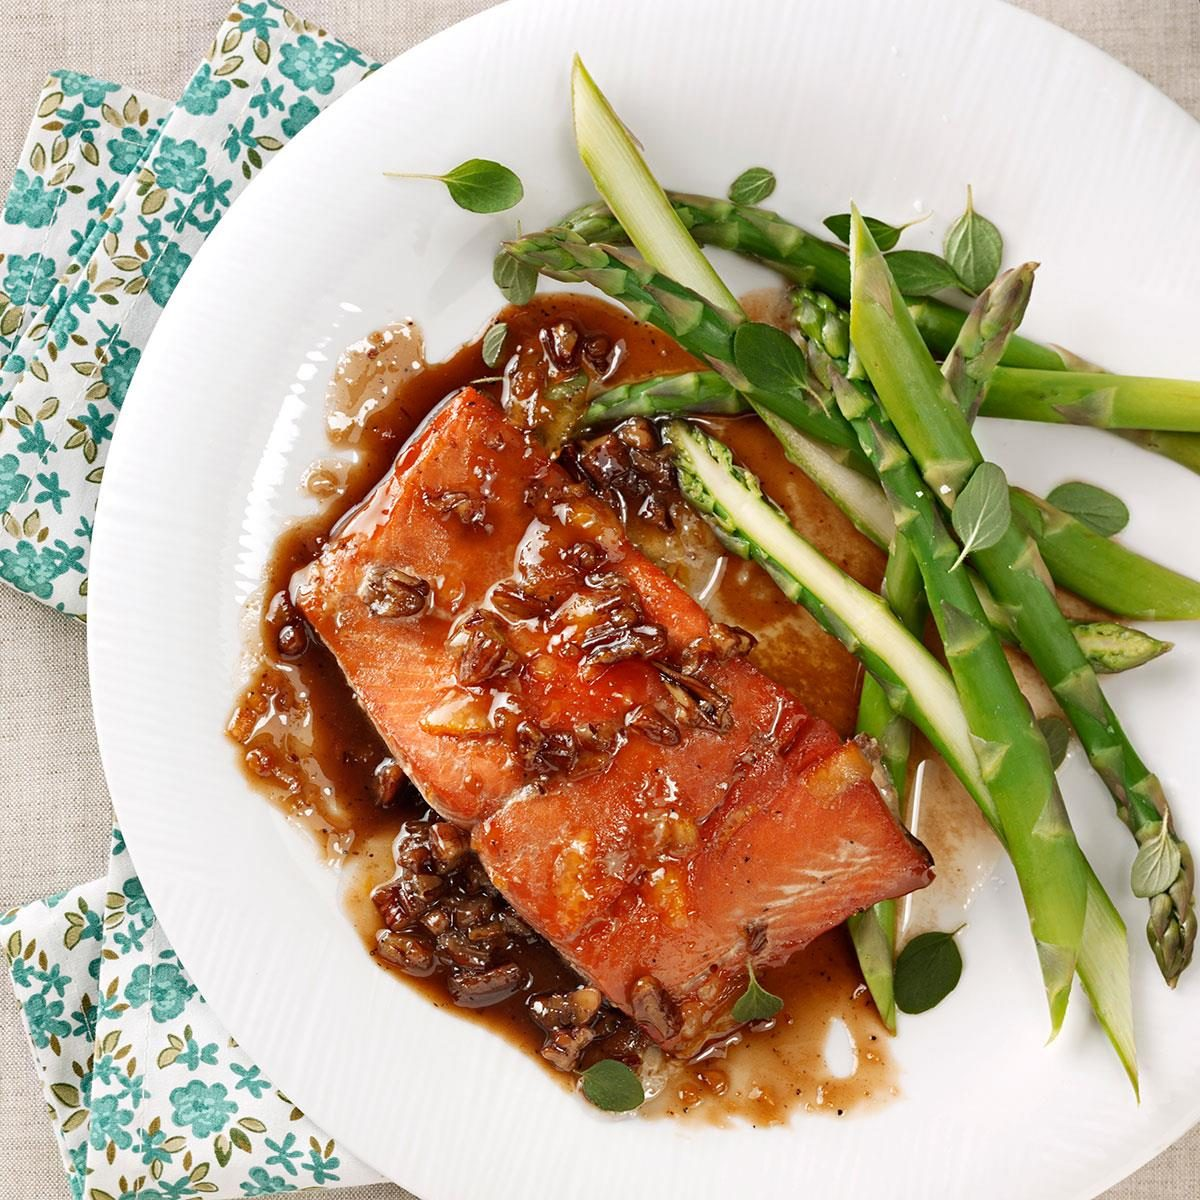 Day 5 Dinner: Orange Pecan Salmon for Two